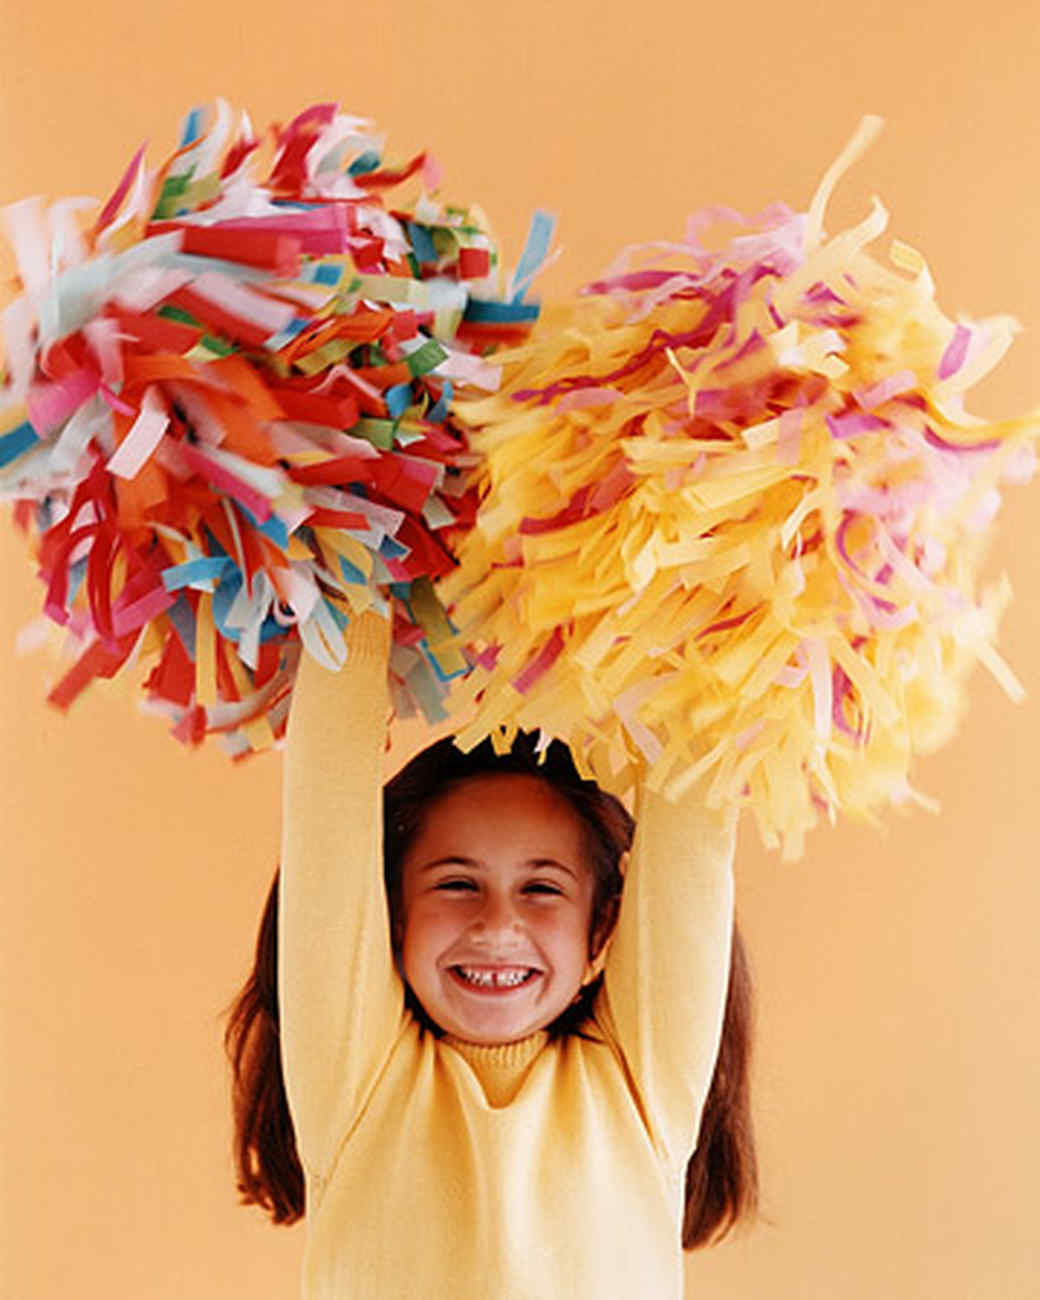 martha stewart paper pom poms Results 1 - 48 of 717  veni masee 1 pair holes handle cheerleading pom poms, price/2 pieces, 002  kg/piece, 6 colors available by hoter® pompoms.